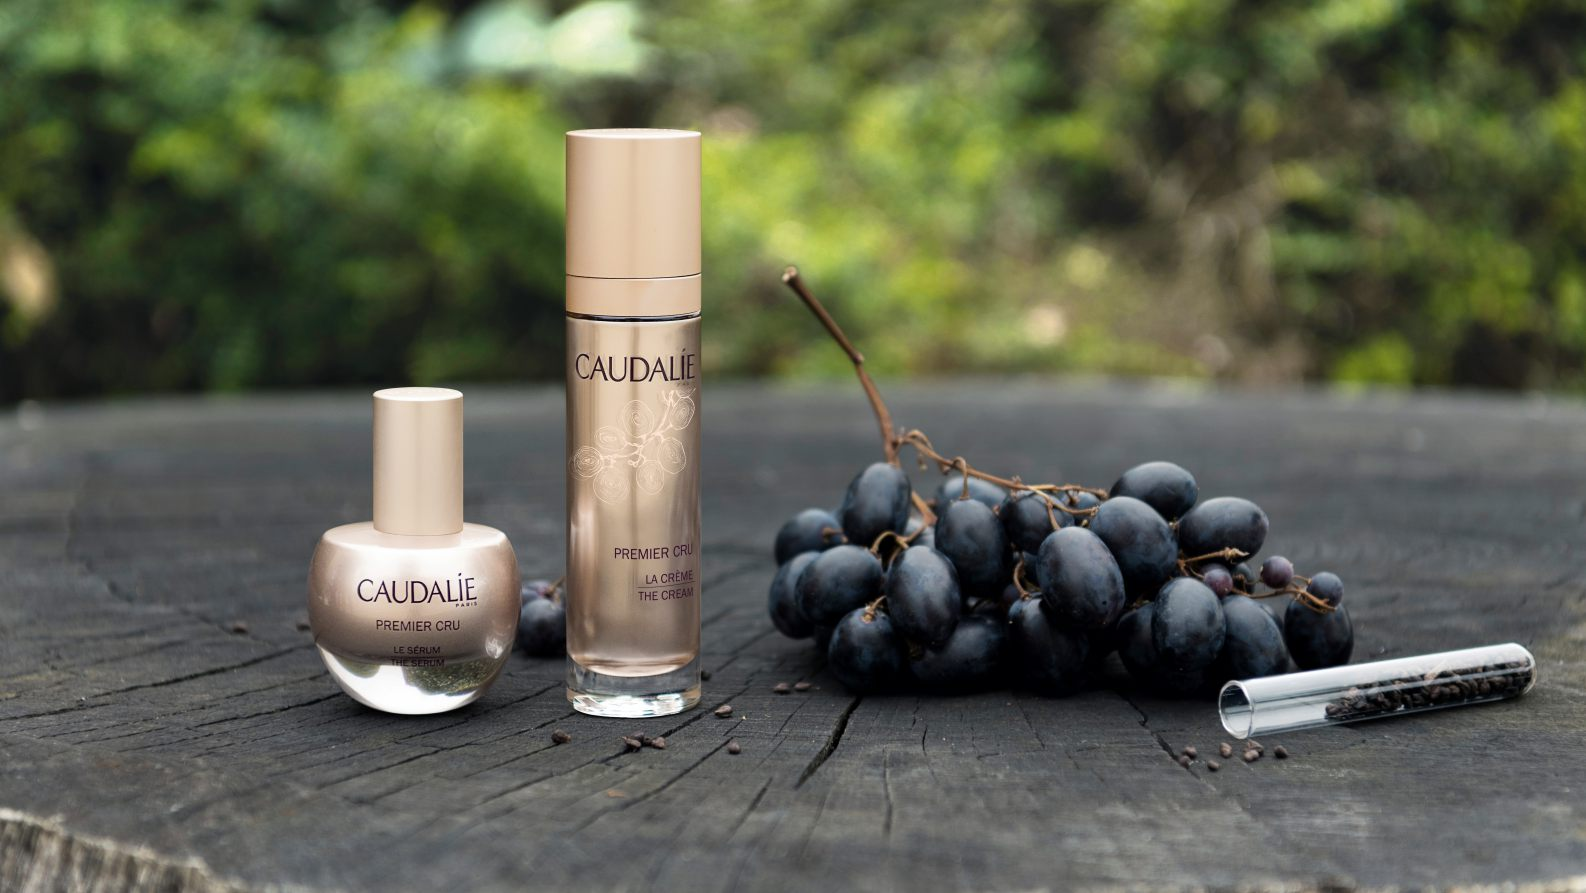 We Review Caudalie S Resveratrol Packed Premier Cru Facial